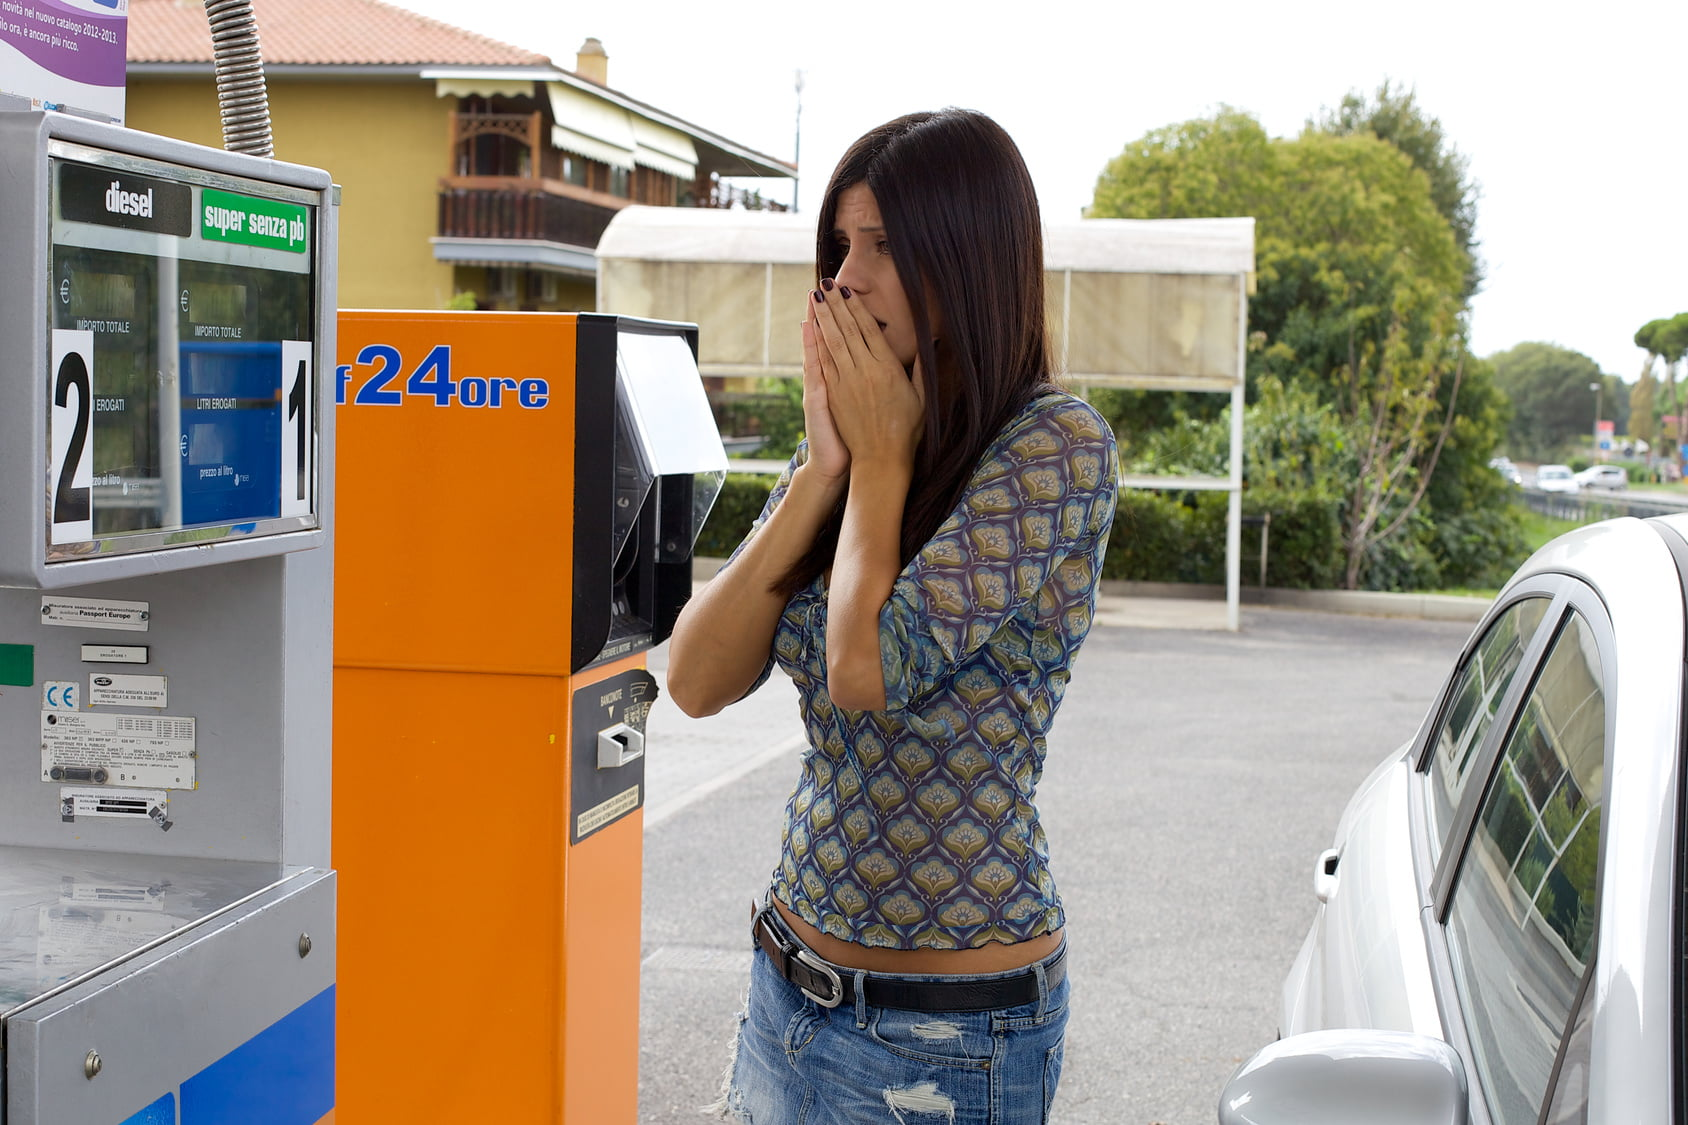 Feeling angry for high price of gasoline